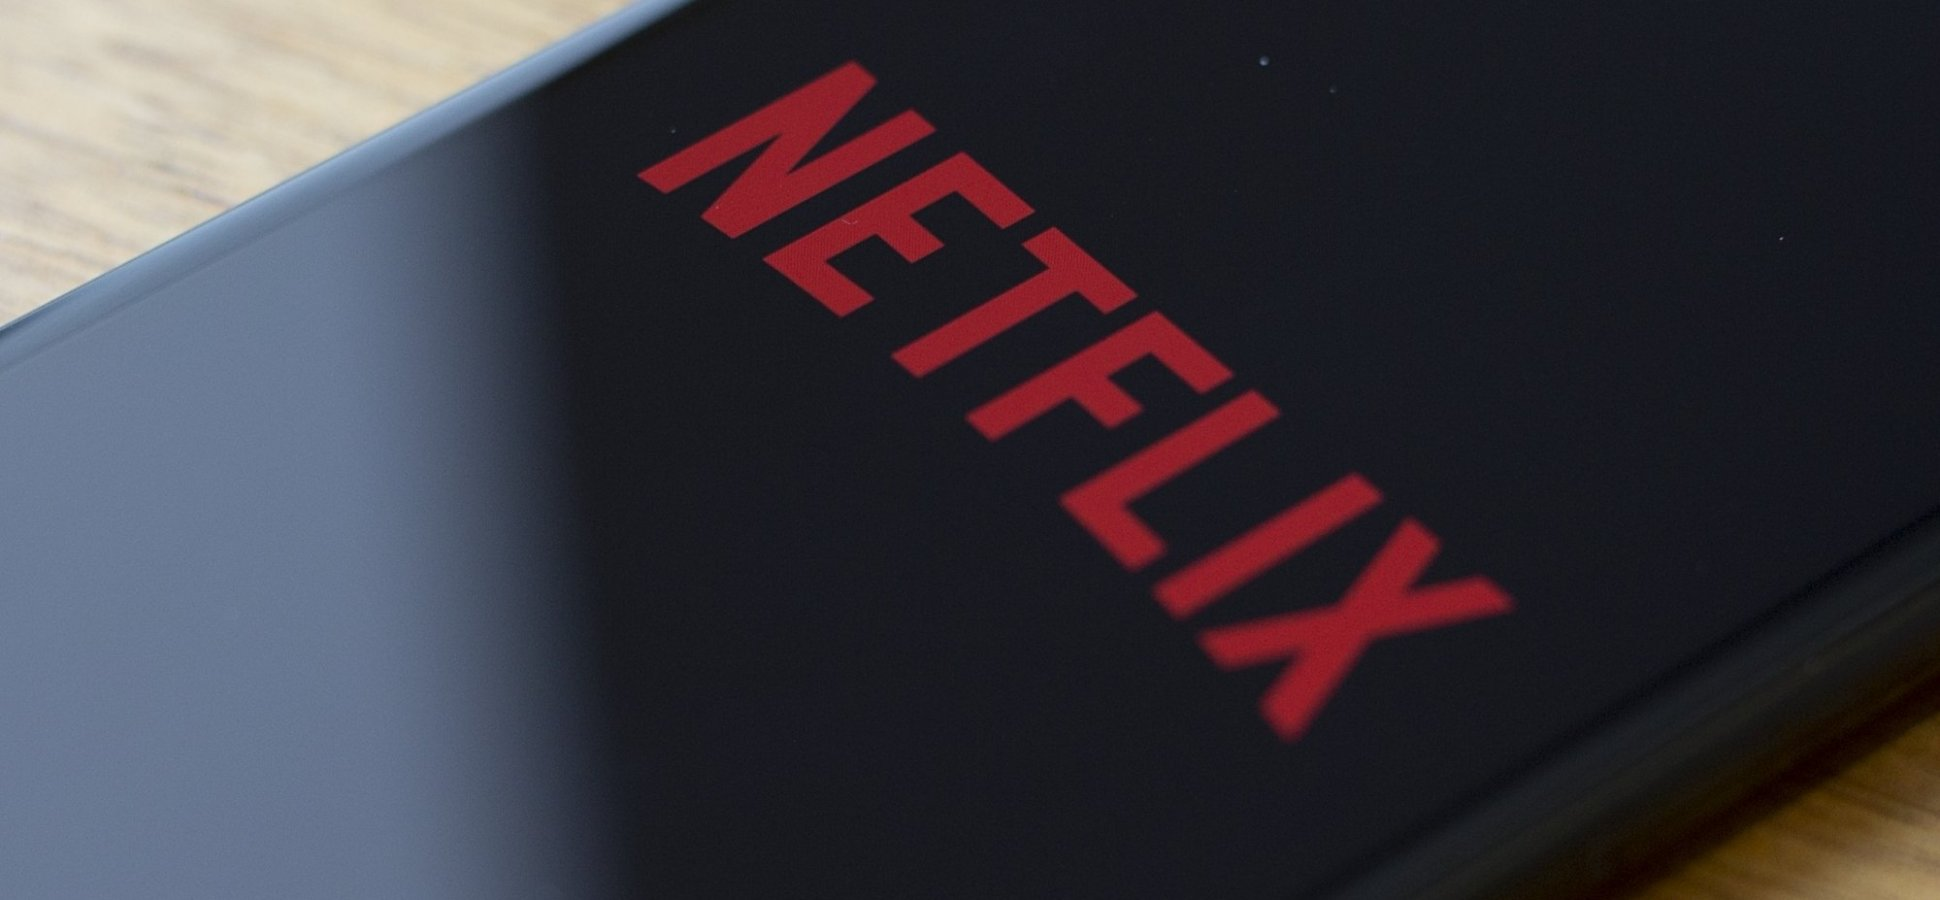 Netflix Isn't Cool With Password Sharing Anymore. Why Piracy Is About to Be the Next Battle in the Streaming War